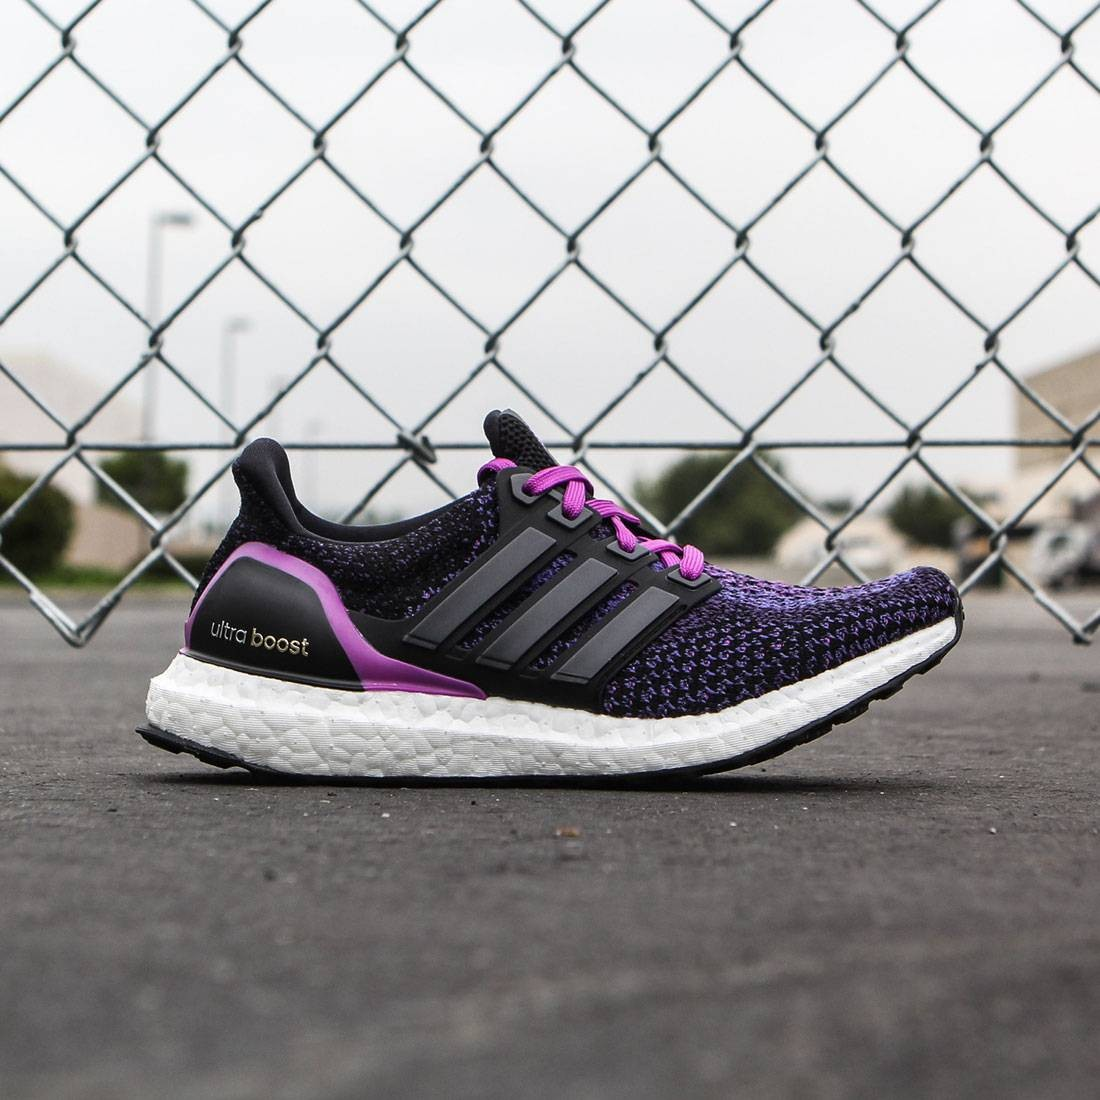 a575de09e Adidas Women Ultra Boost black core black shock purple